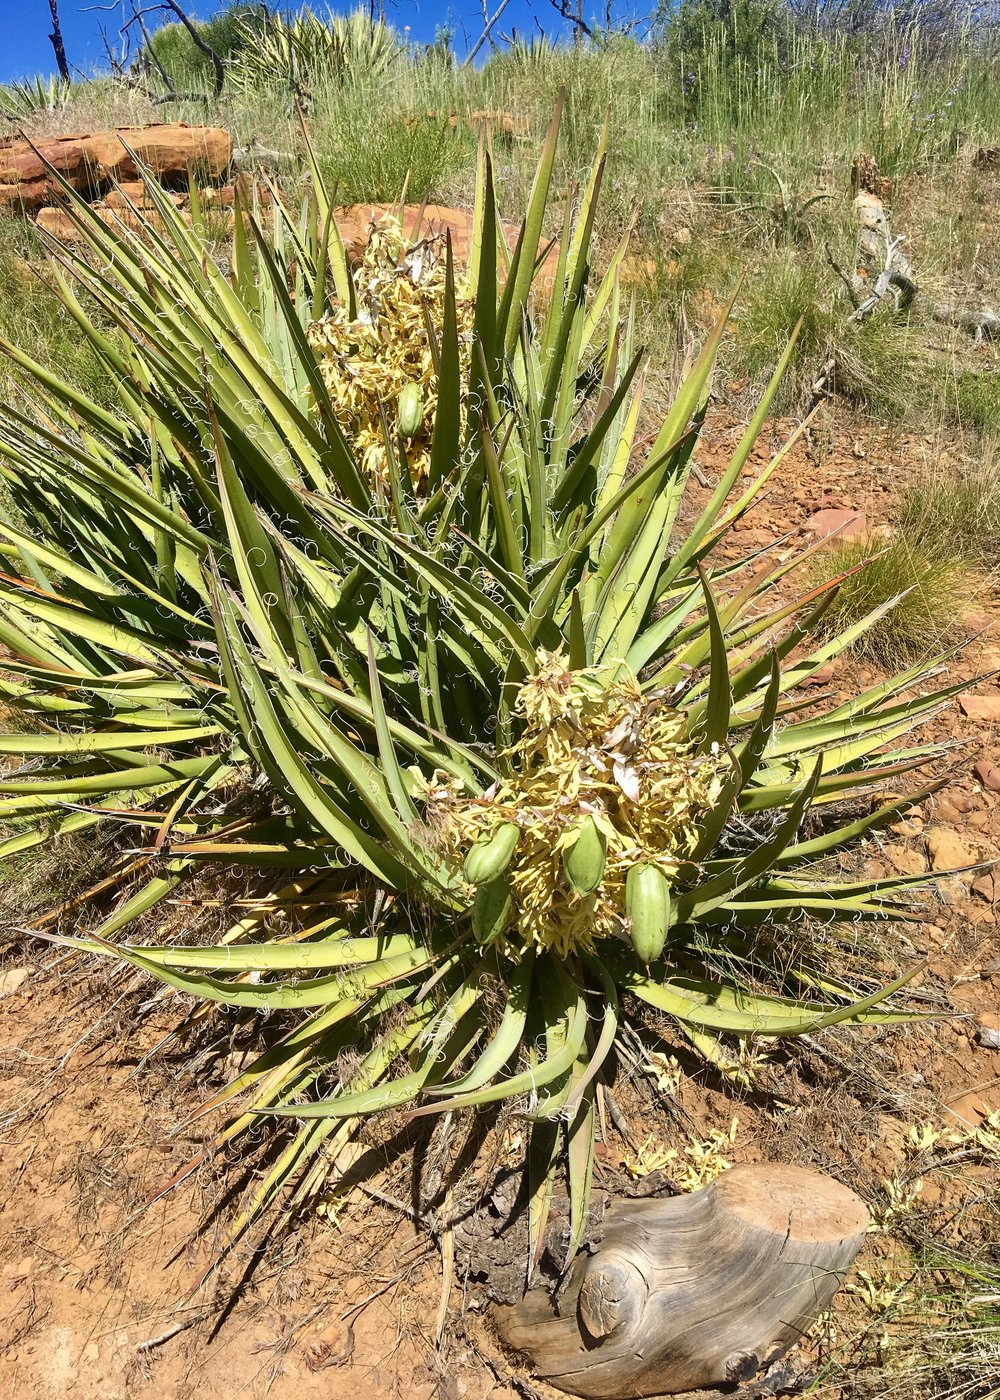 Yucca finished flowering, seed pods visible